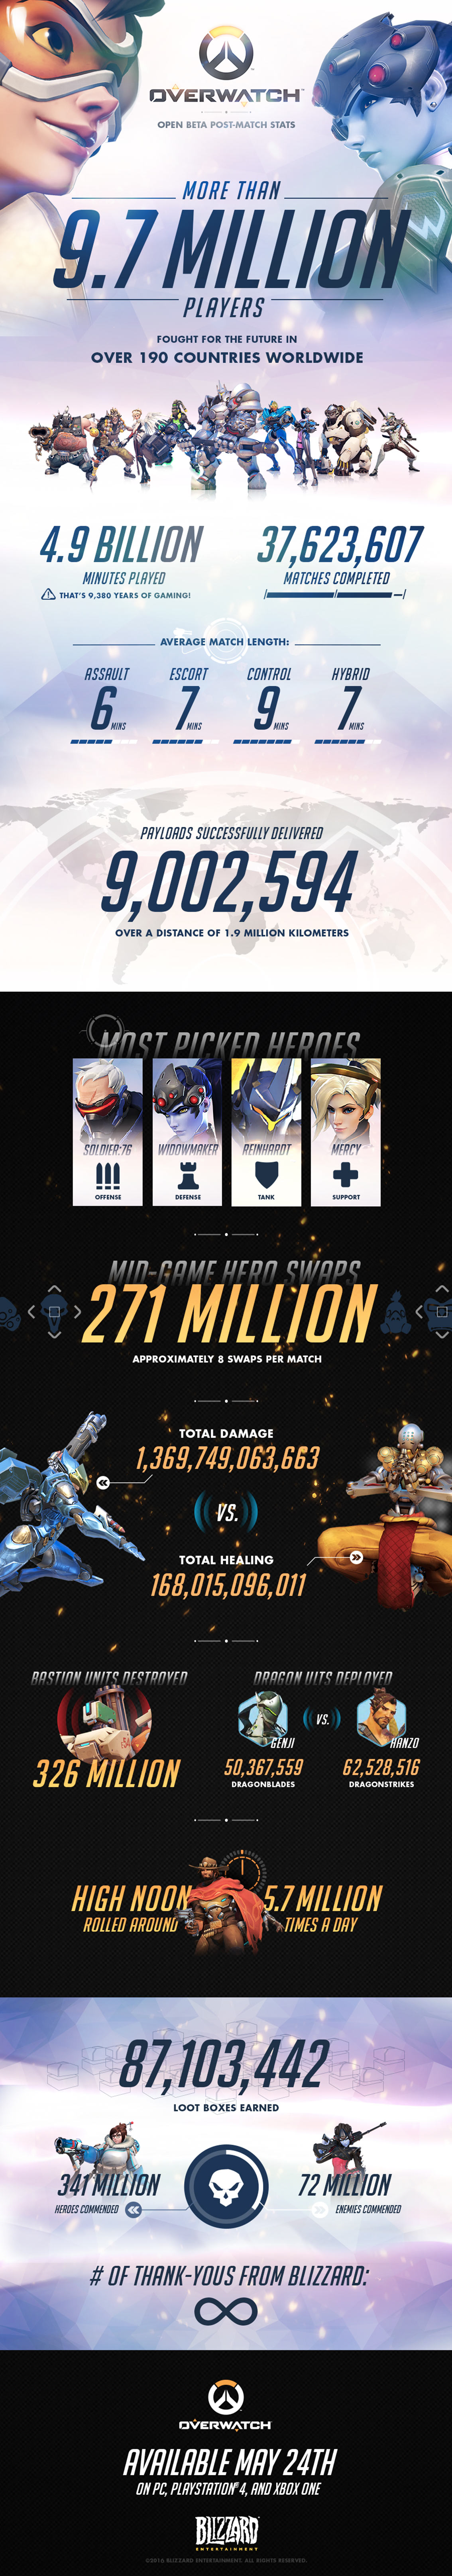 Overwatch Open Beta Statistics Infographic